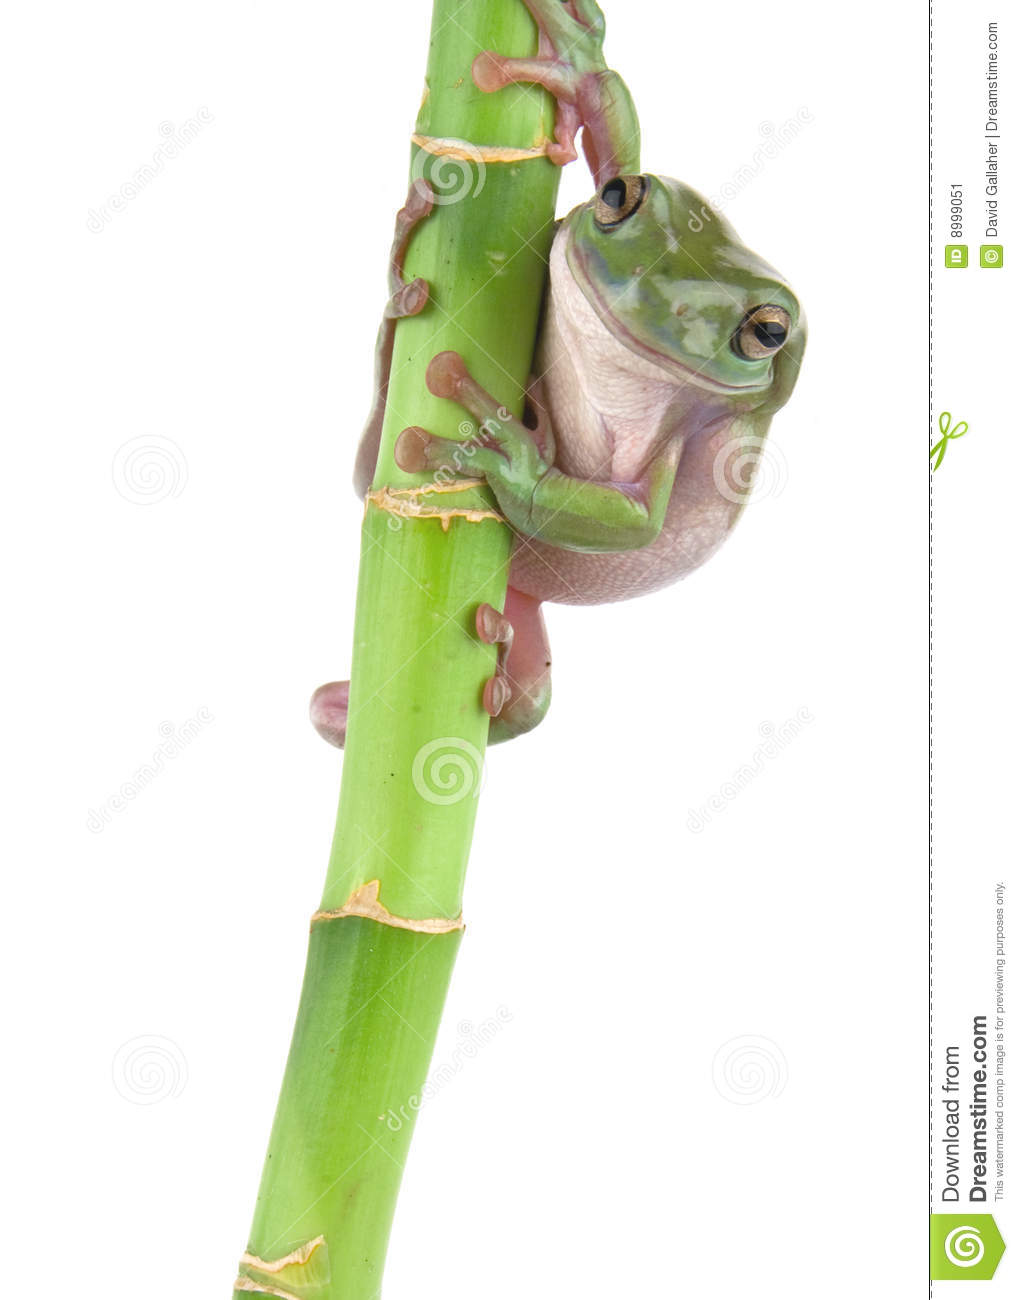 Green tree frog climbing stock image. Image of isolated ...